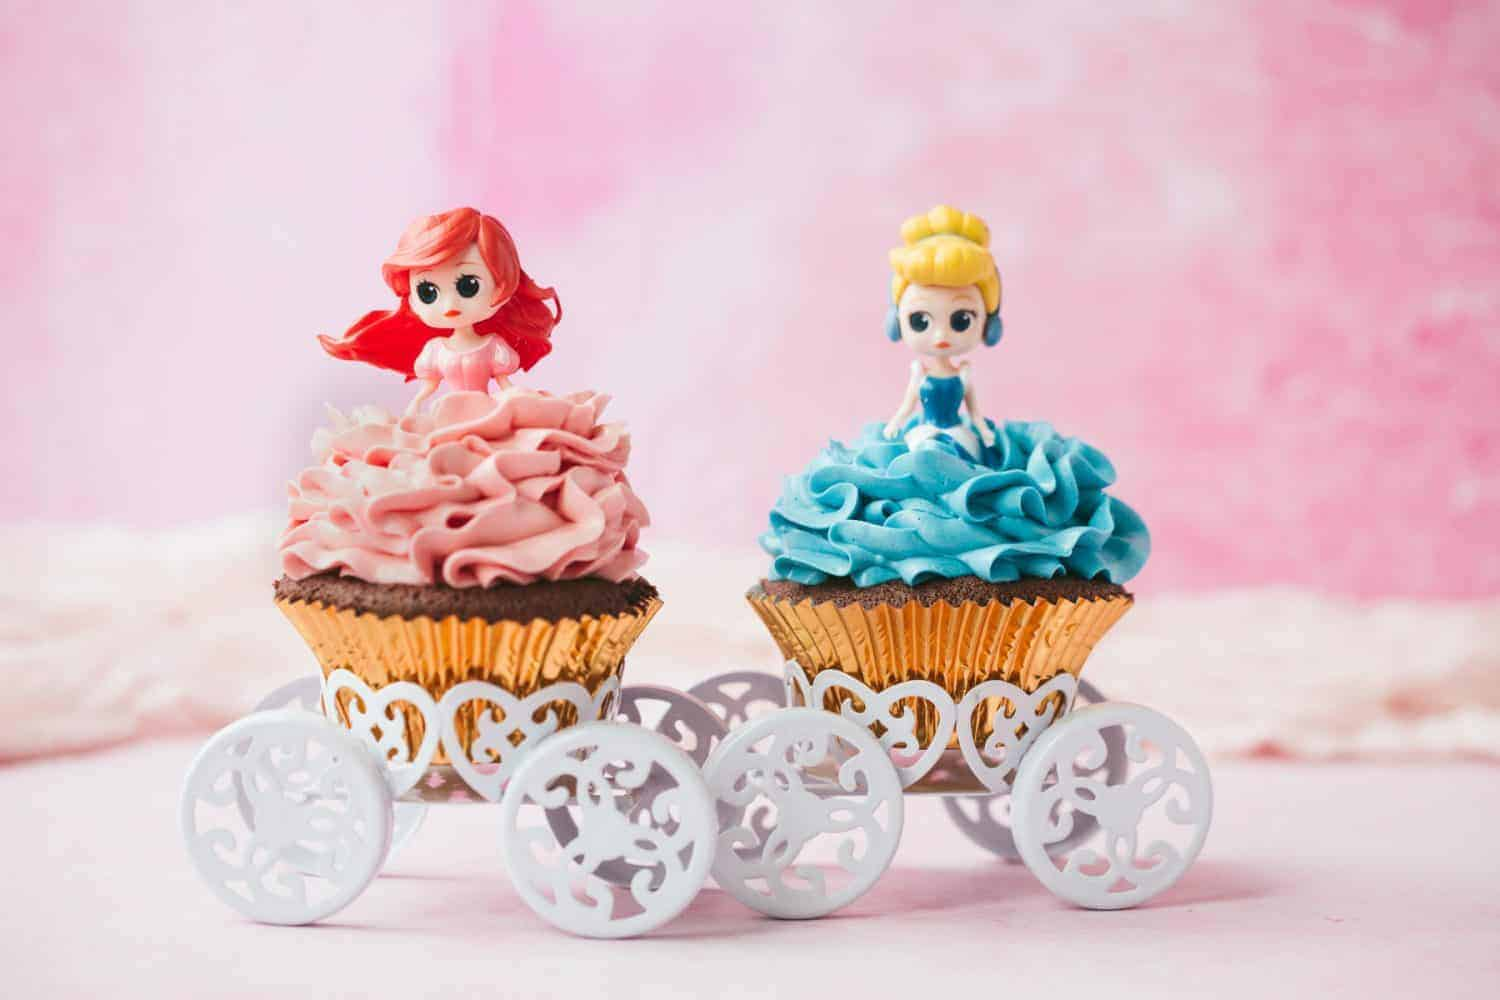 Two Disney Princess cupcakes sitting on chariot cupcake holders.